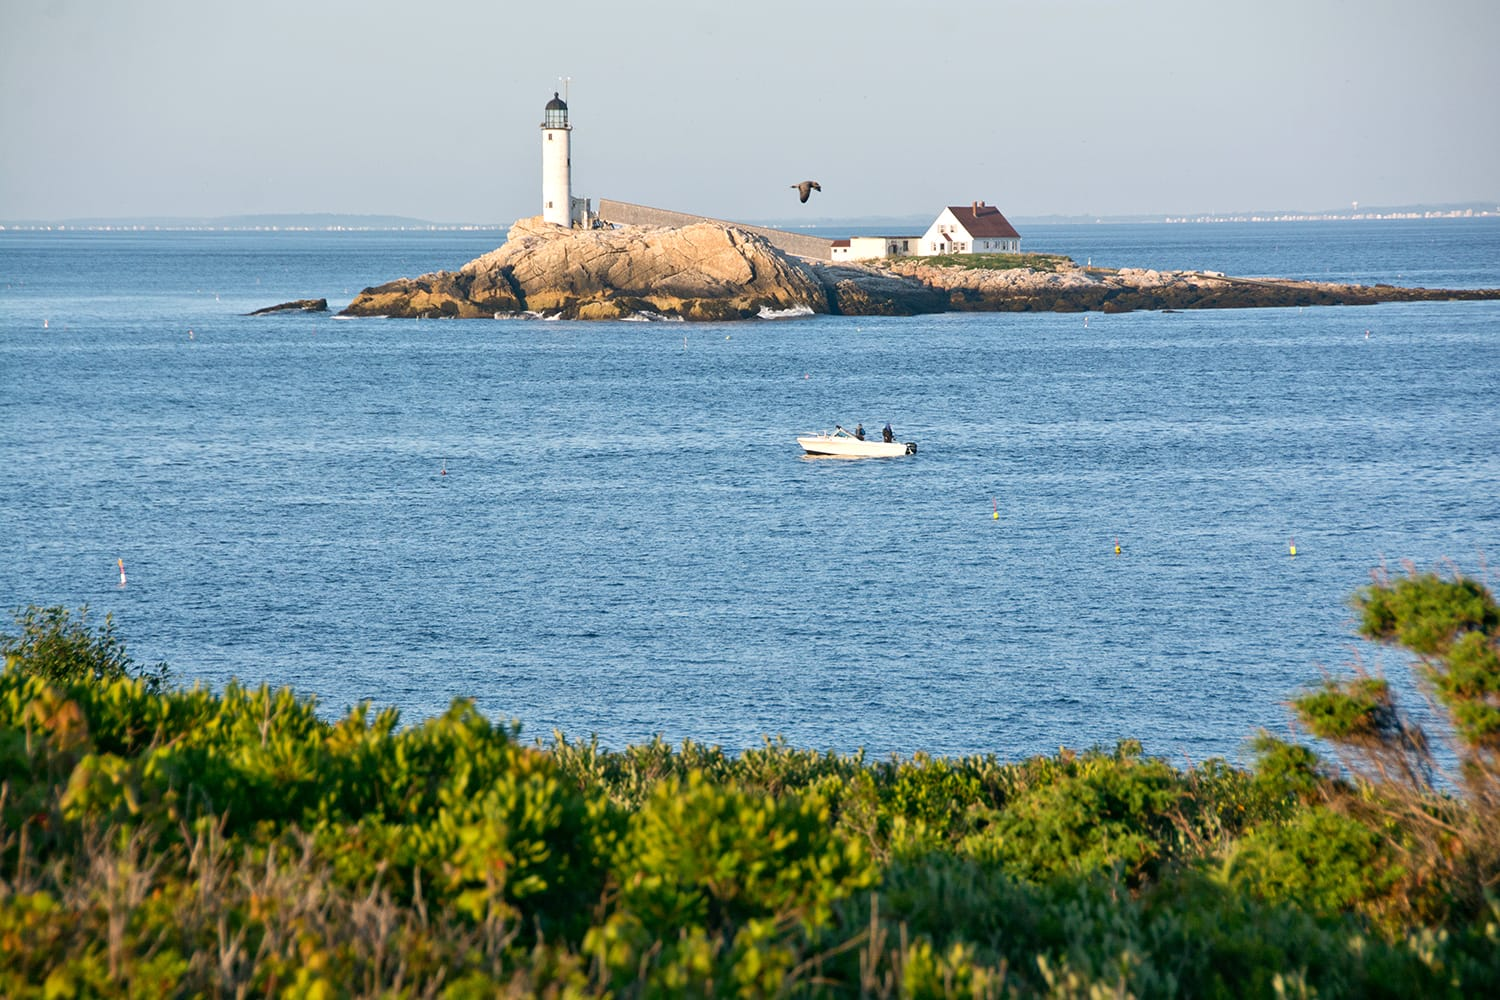 Early morning fishermen try their luck in the strait between Star Island and White Island on a clear summer day. Rye, NH, USA